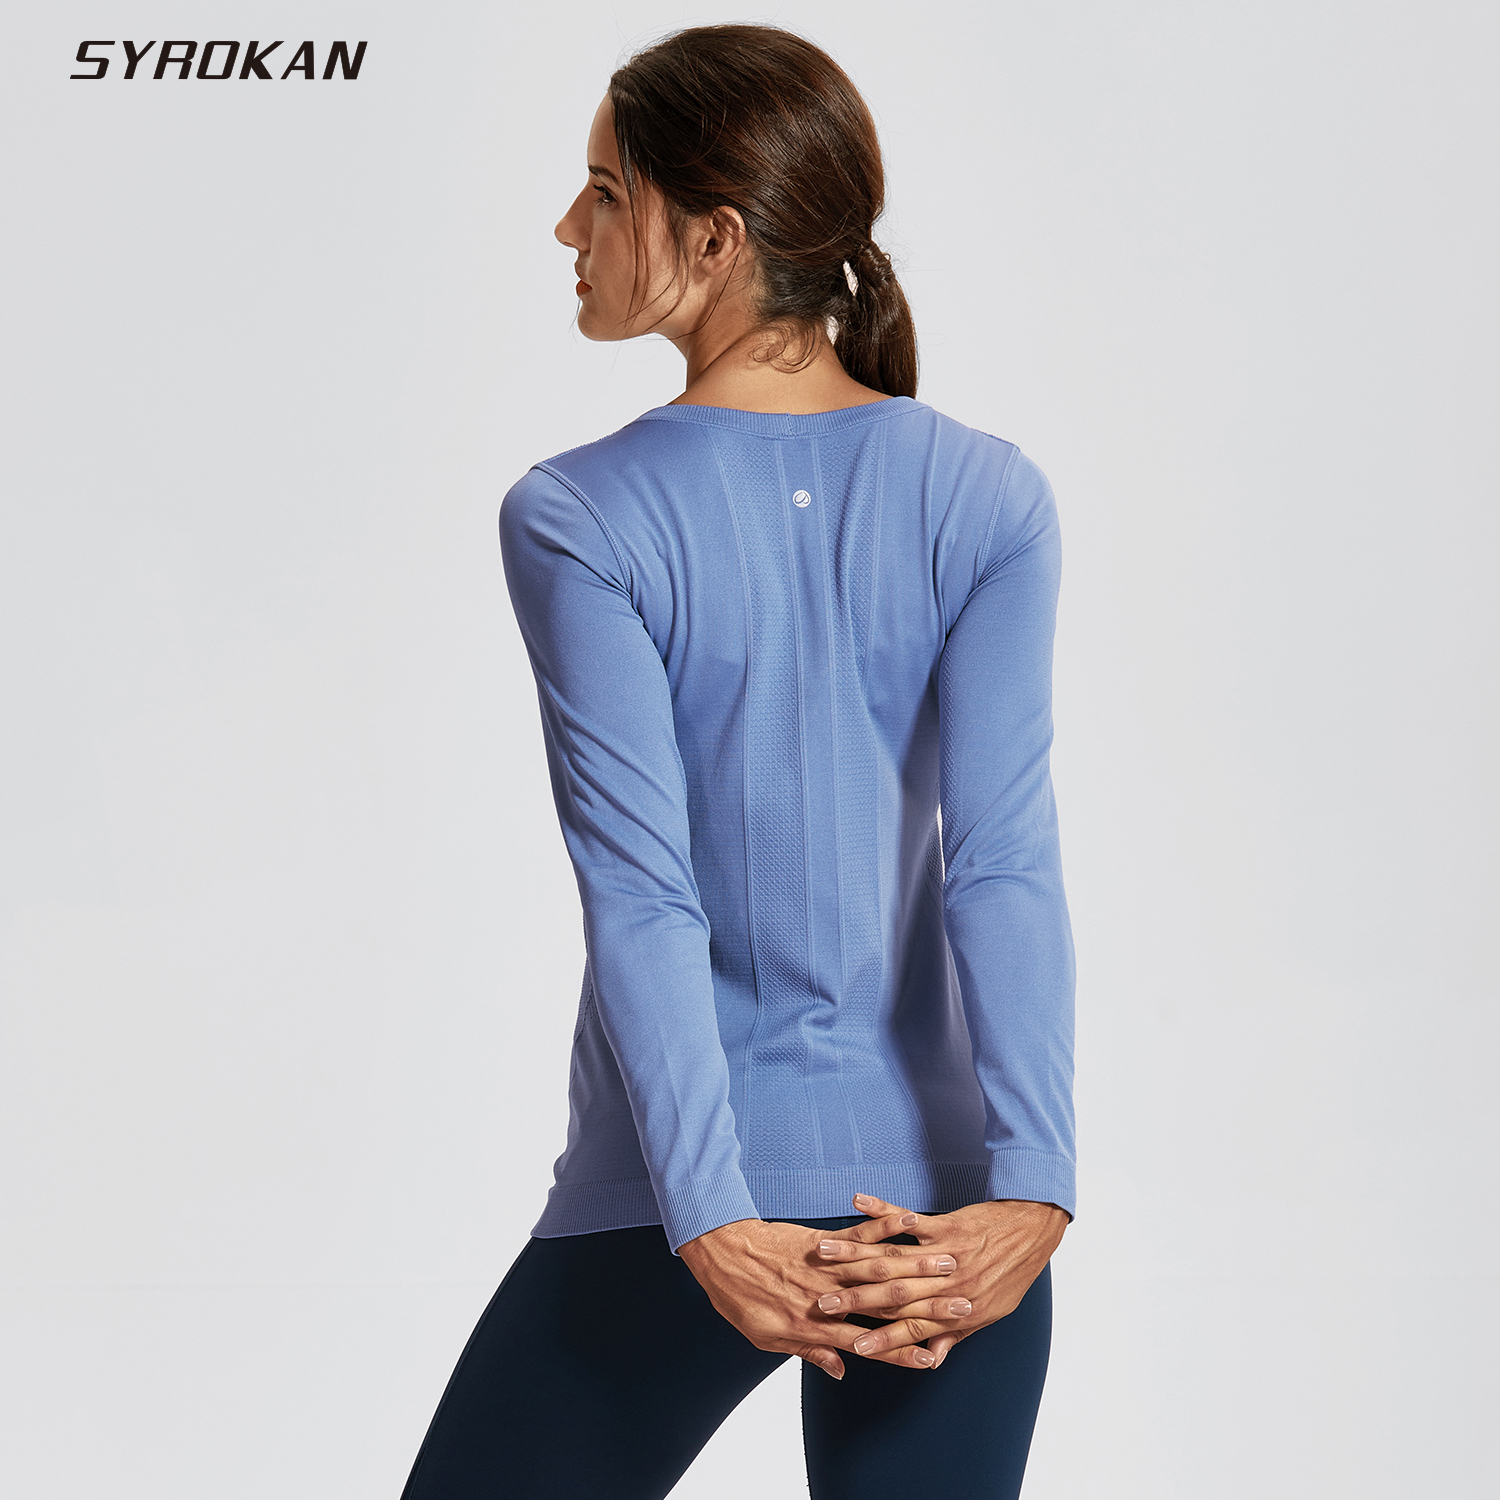 SYROKAN Women's Seamless Active Long Sleeve Workout Running Sports Leisure T-shirt